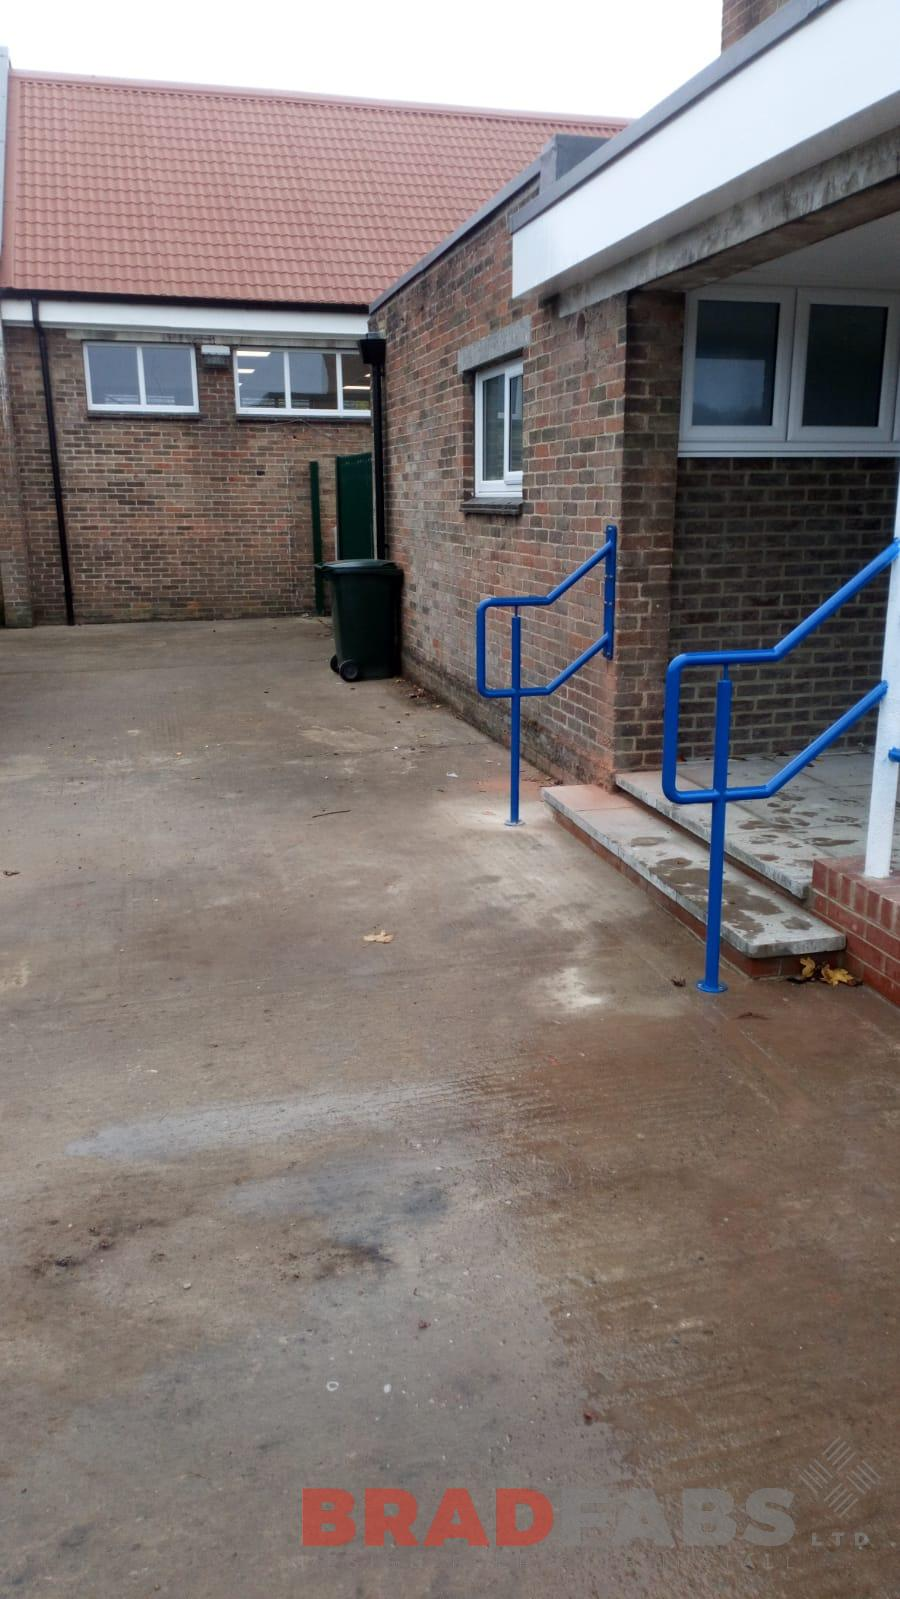 Mild steel, galvanised and powder coated railings for school by bradfabs